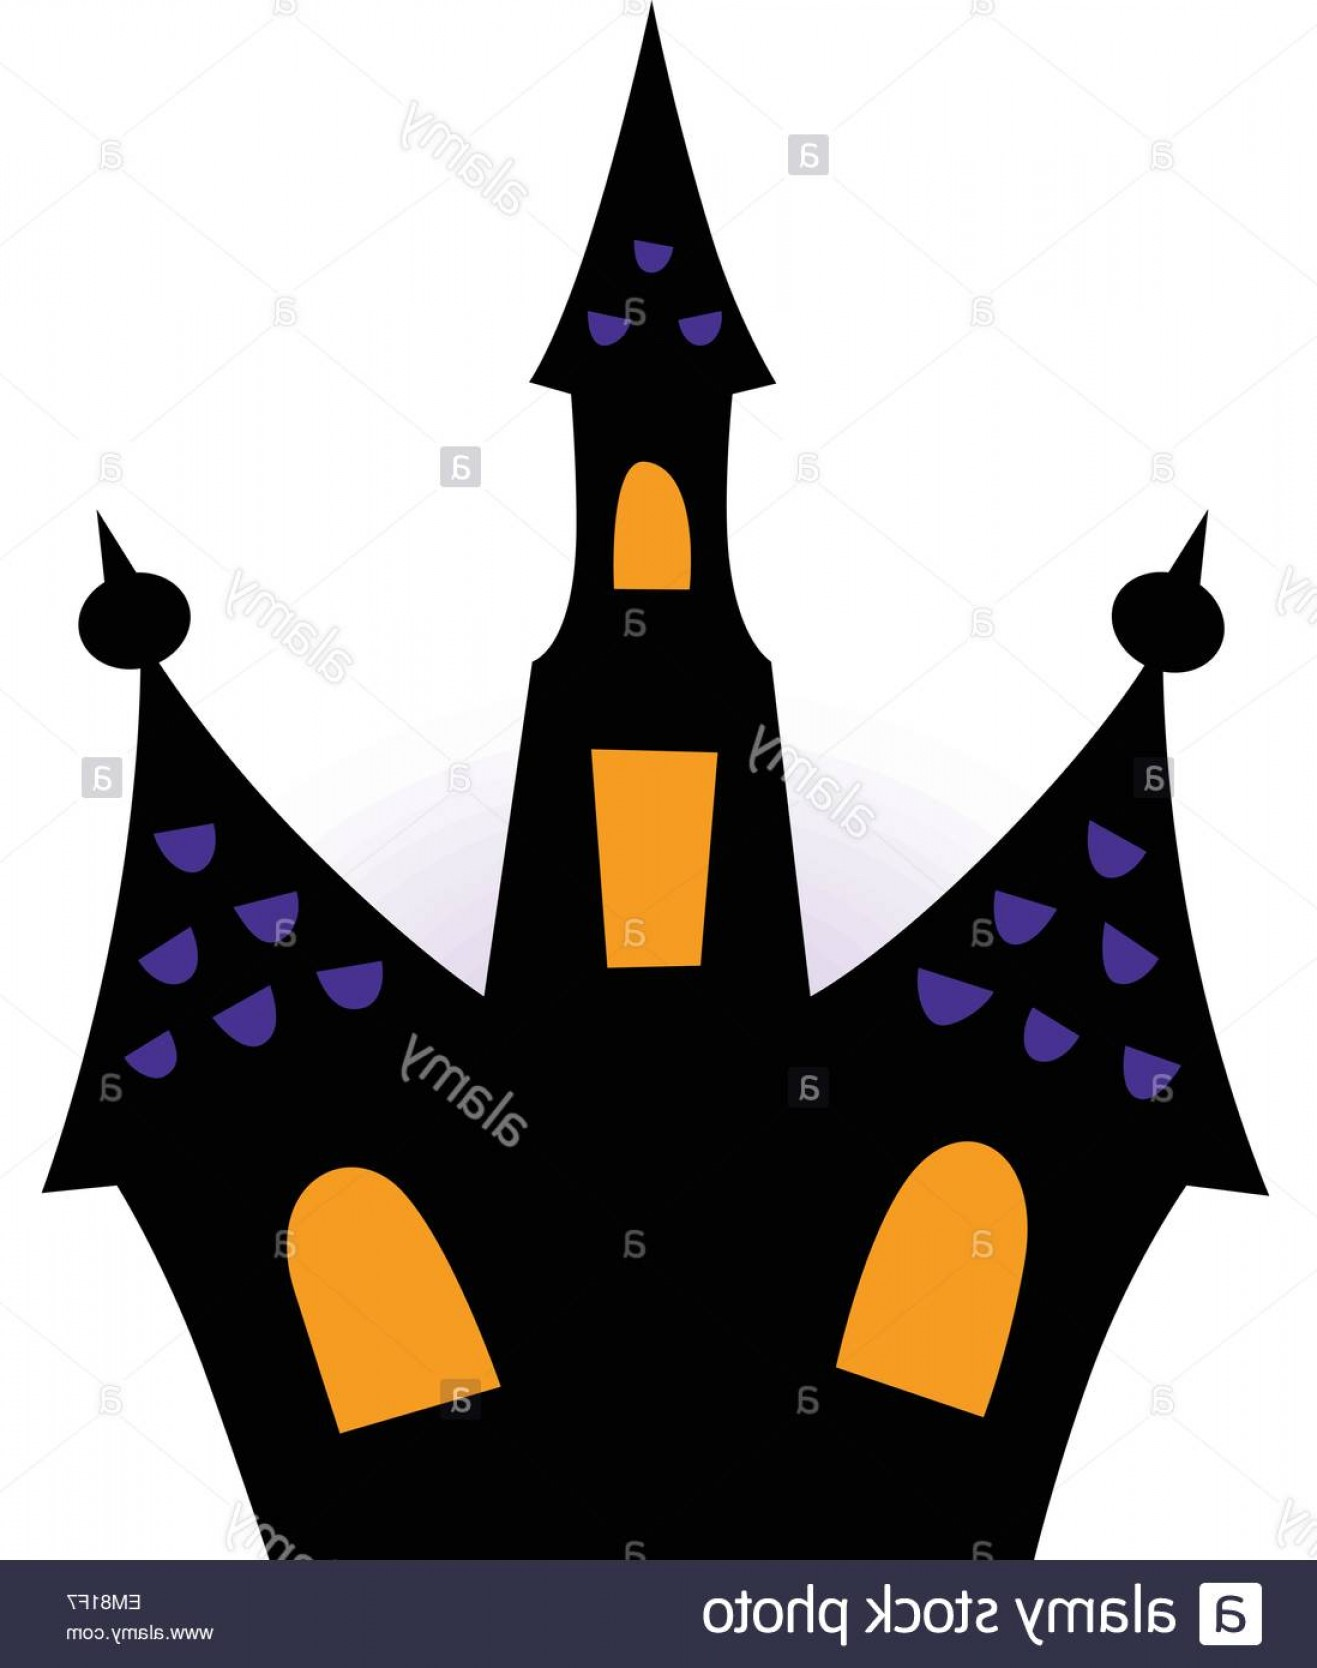 Halloween Haunted House Silhouette Vector: Stock Photo Halloween Haunted House Silhouette Isolated On White